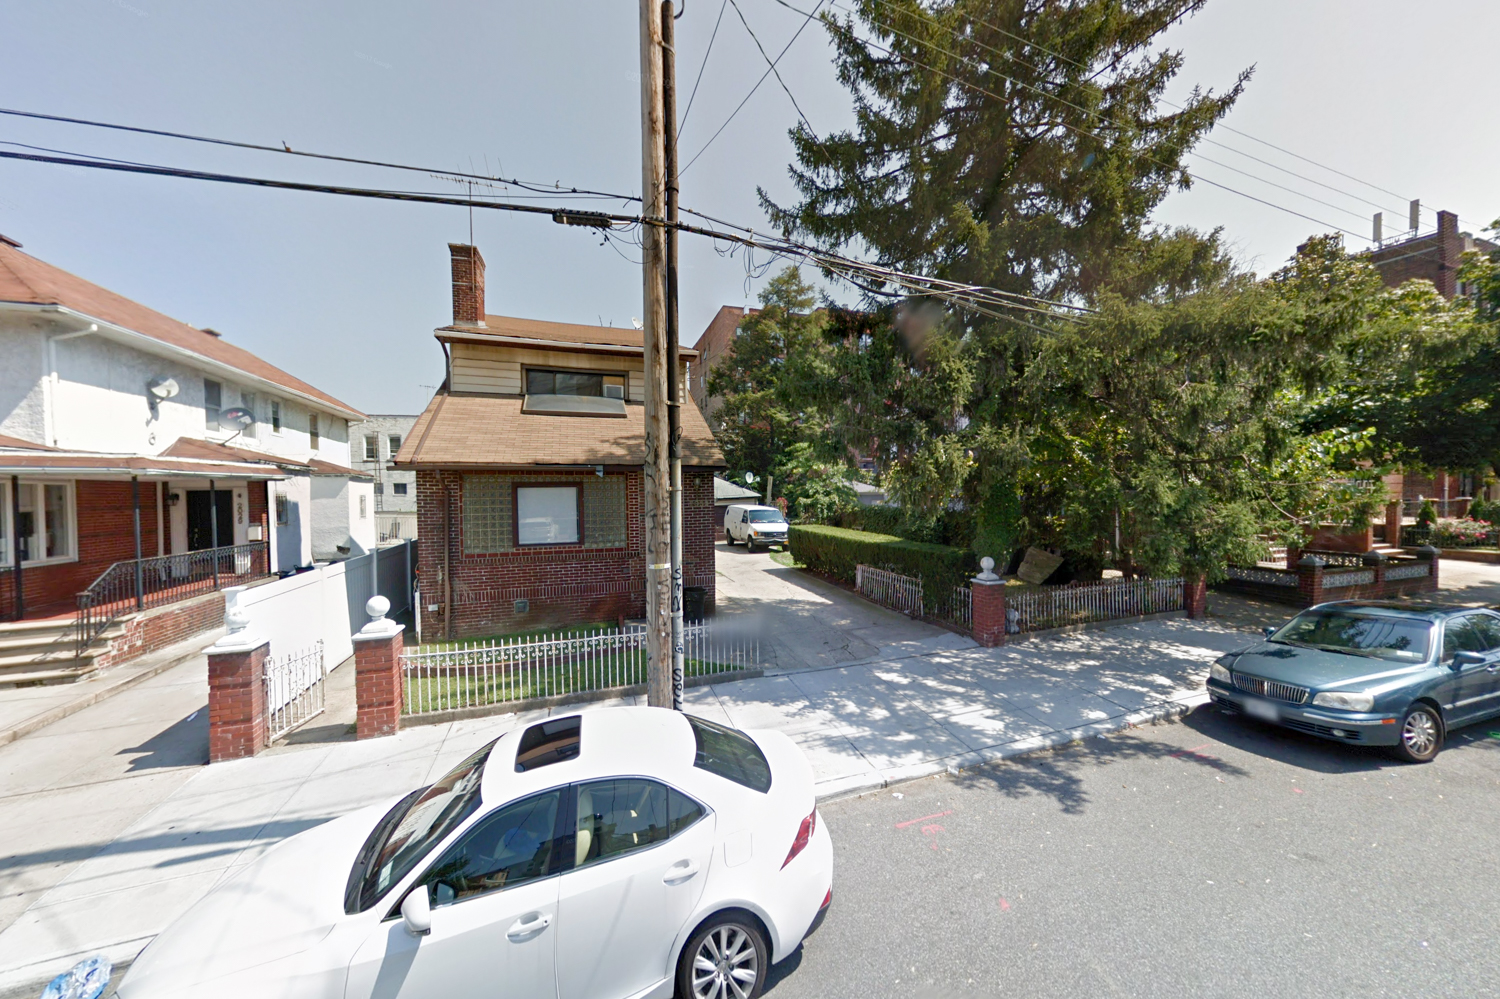 2033 East 17th Street, via Google Maps